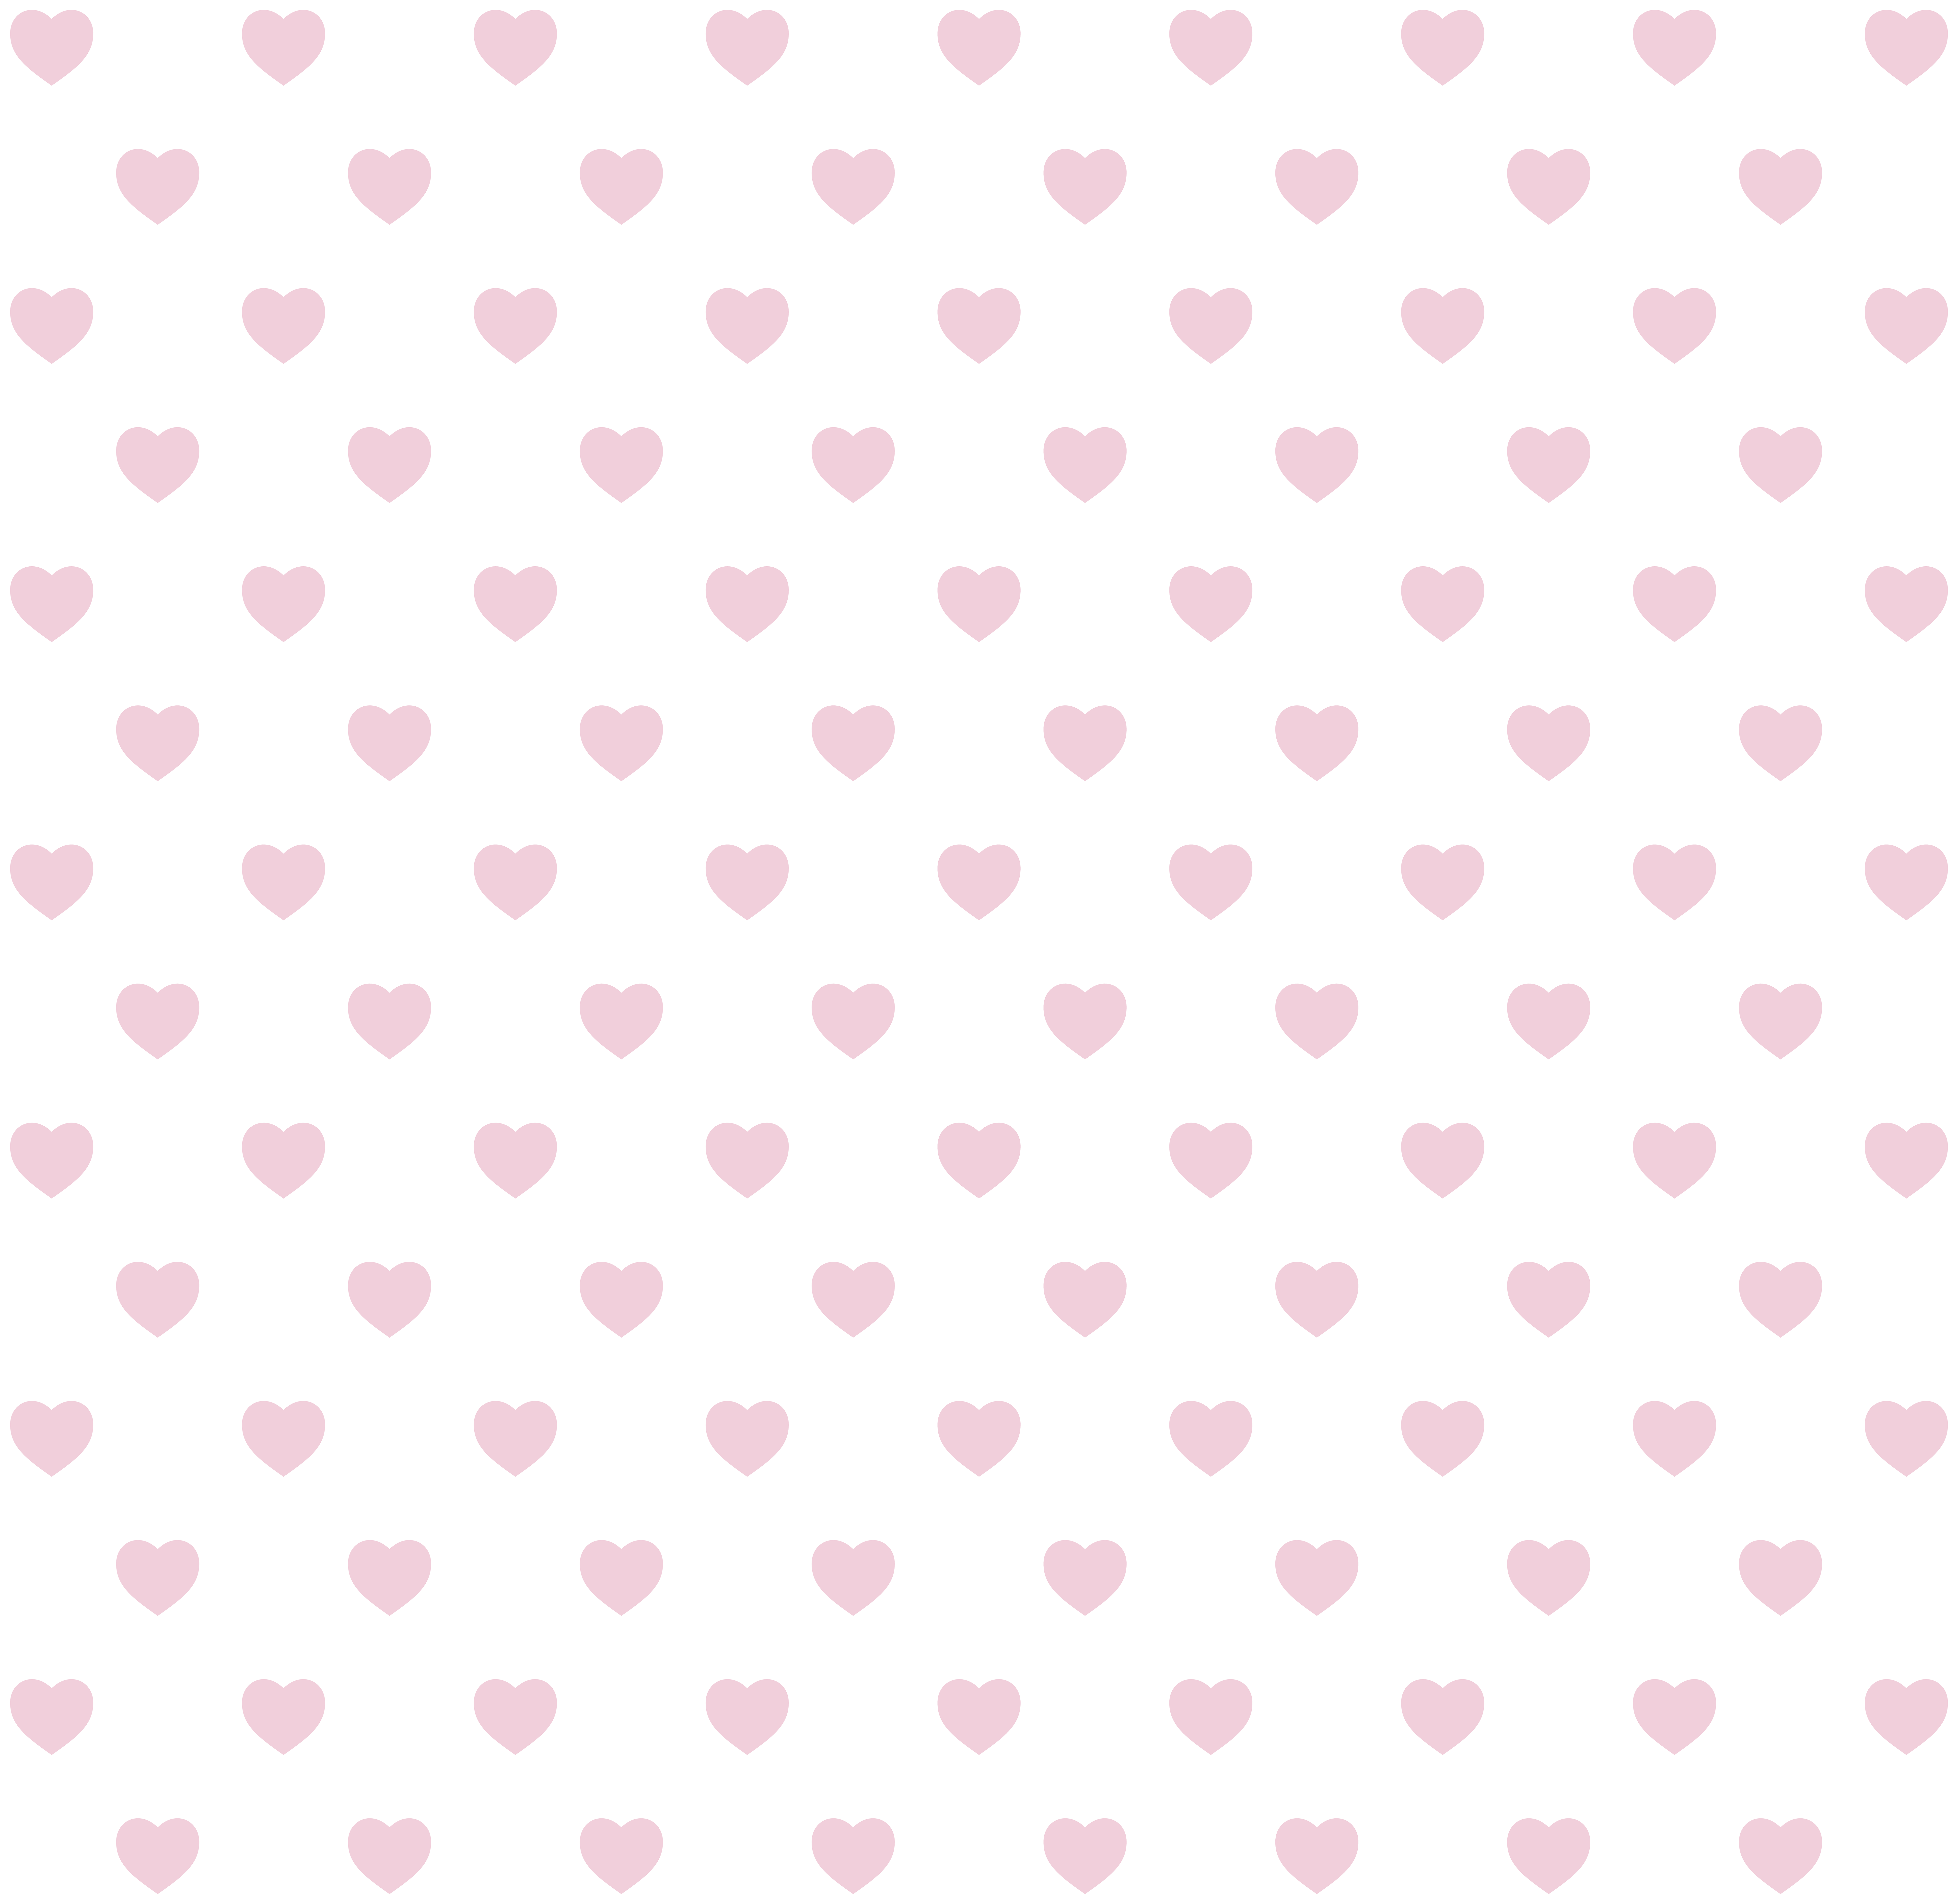 Background Hearts PNG Clip Art Image.